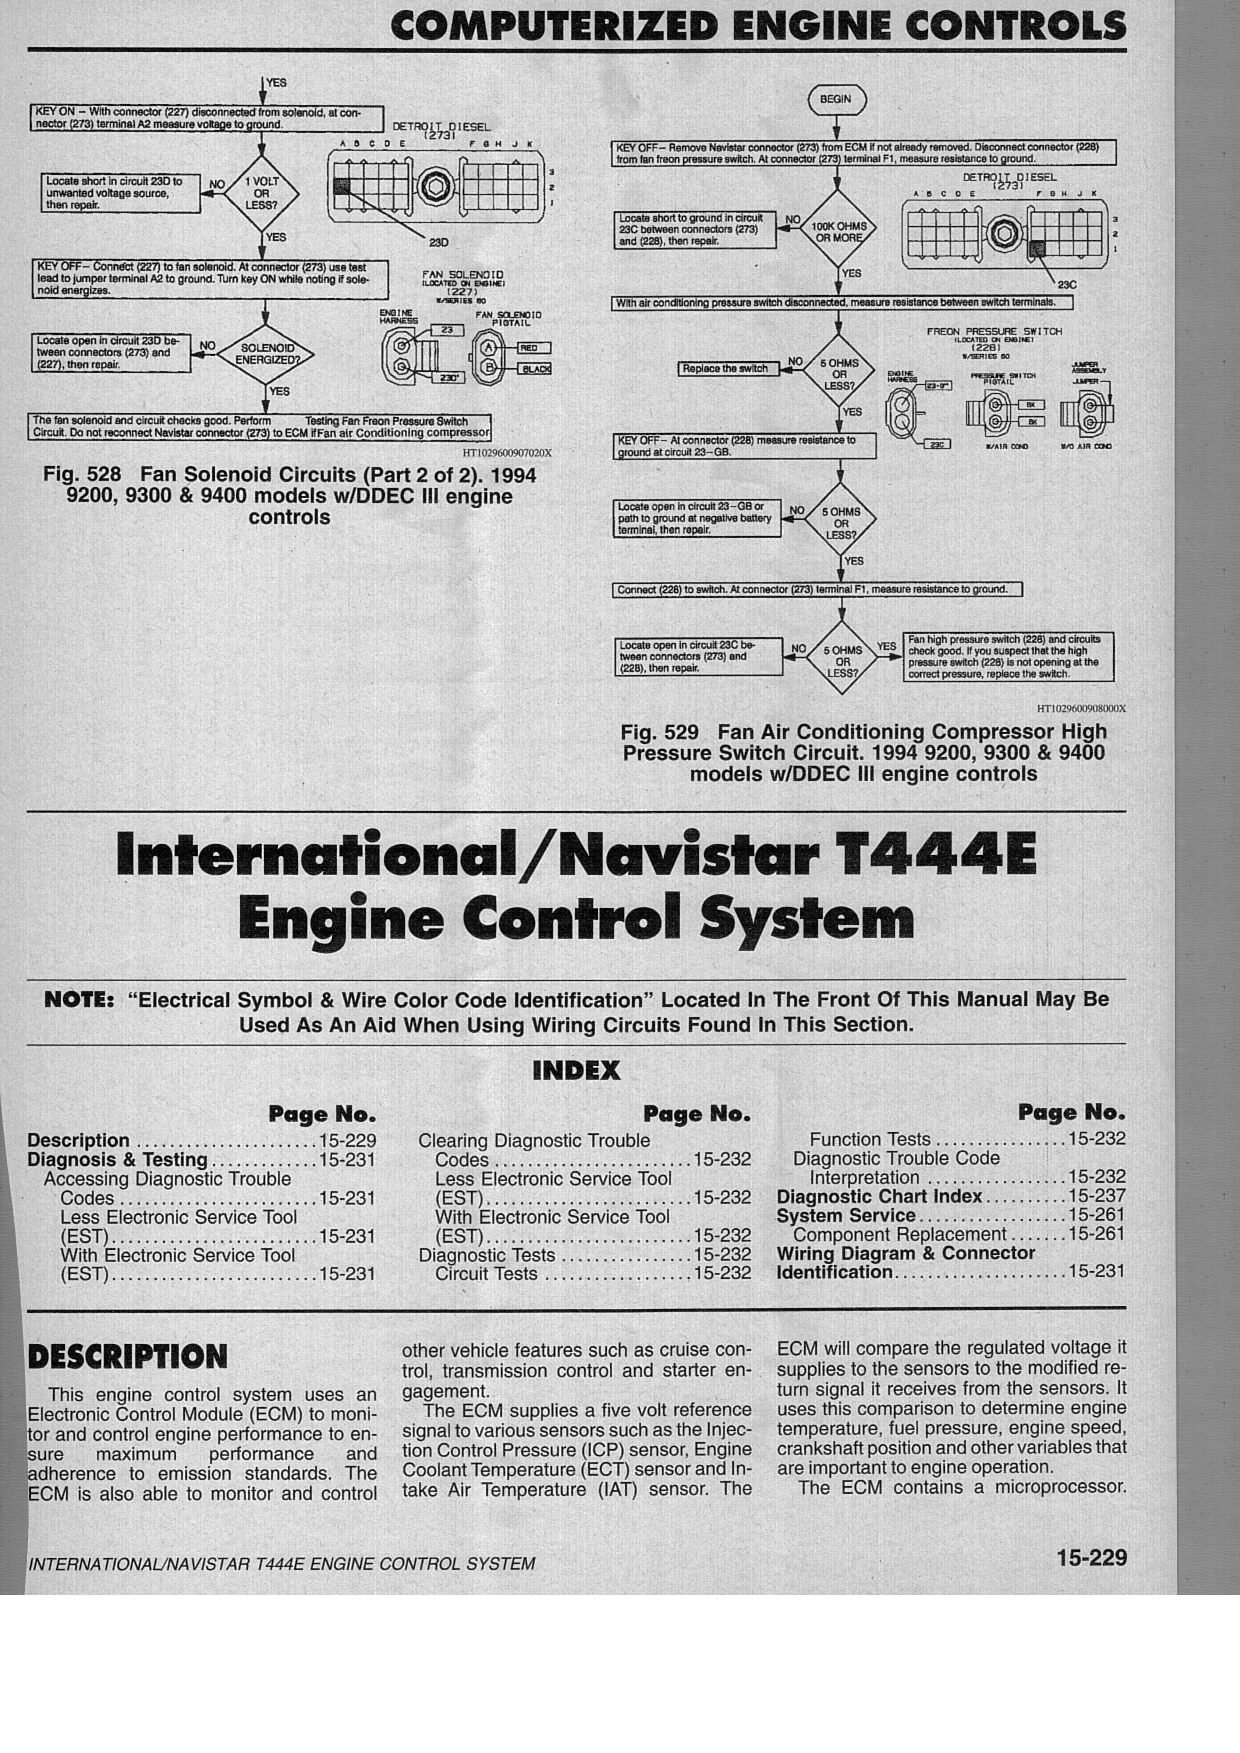 2009 07 30_180621_T444epg1 how do i get hold of a wiring diagram for a 1996 international t444e wiring diagram at bakdesigns.co